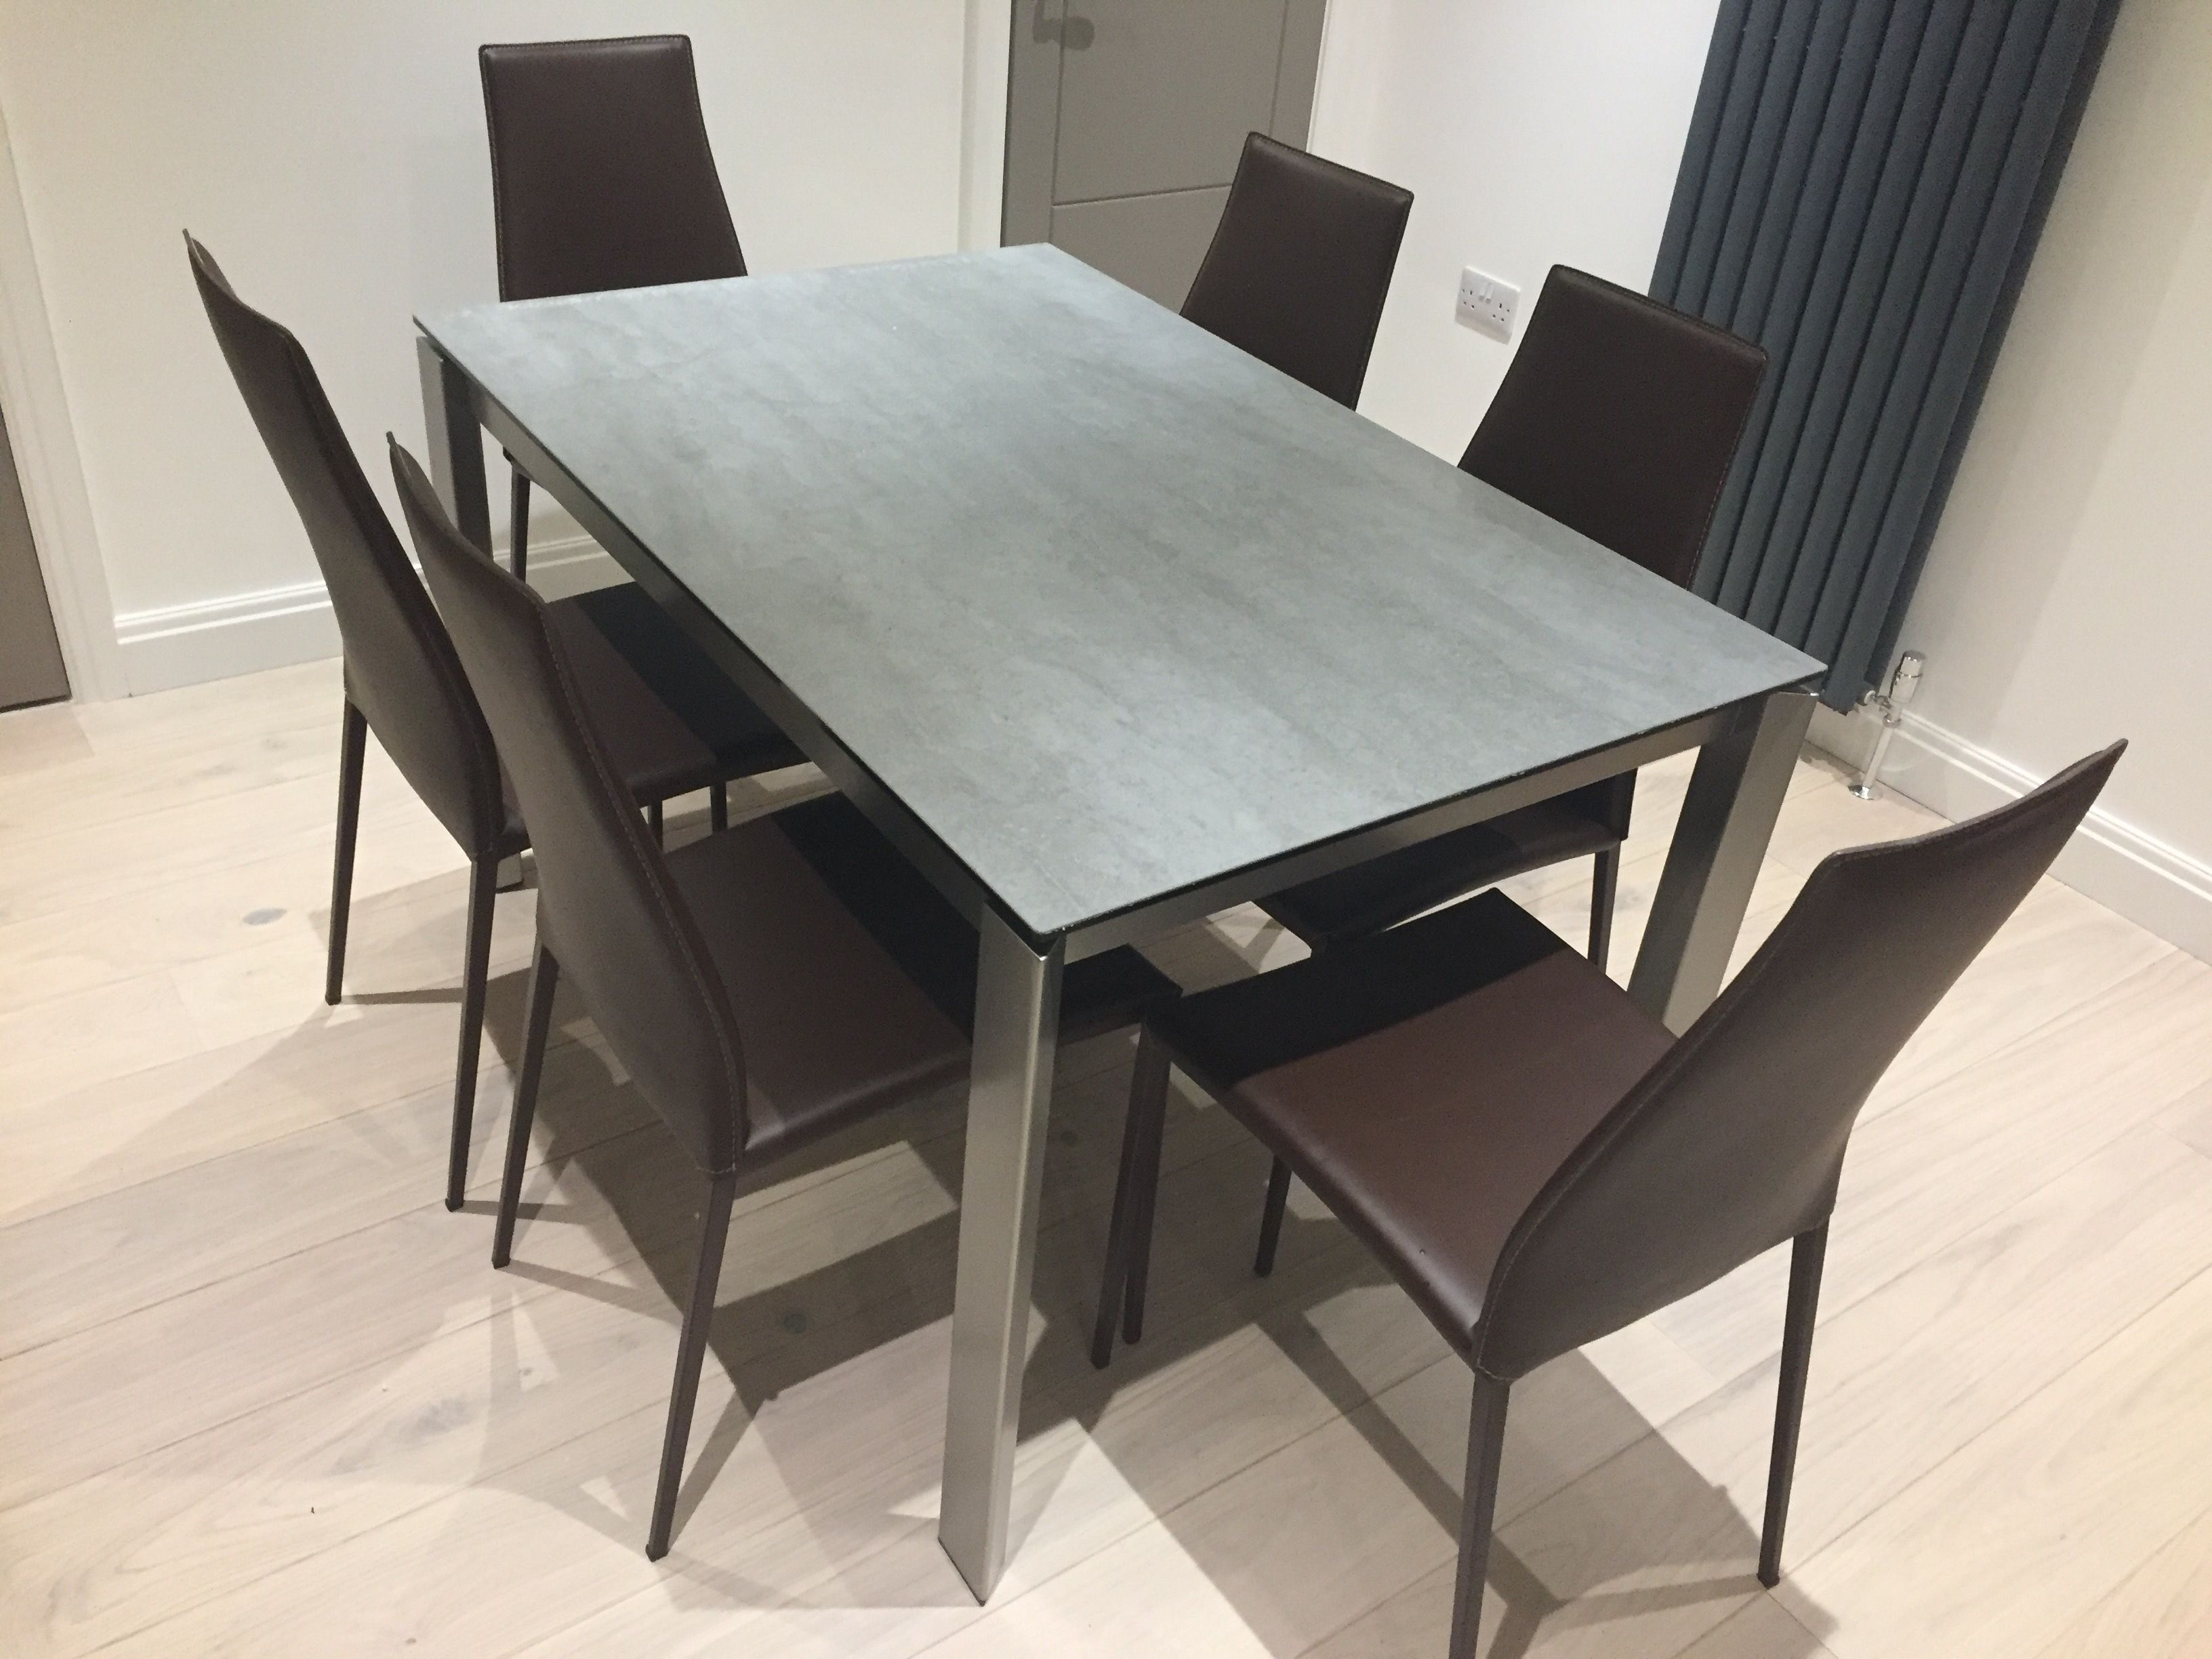 Calligaris Duca with Ceramic top Features Dining